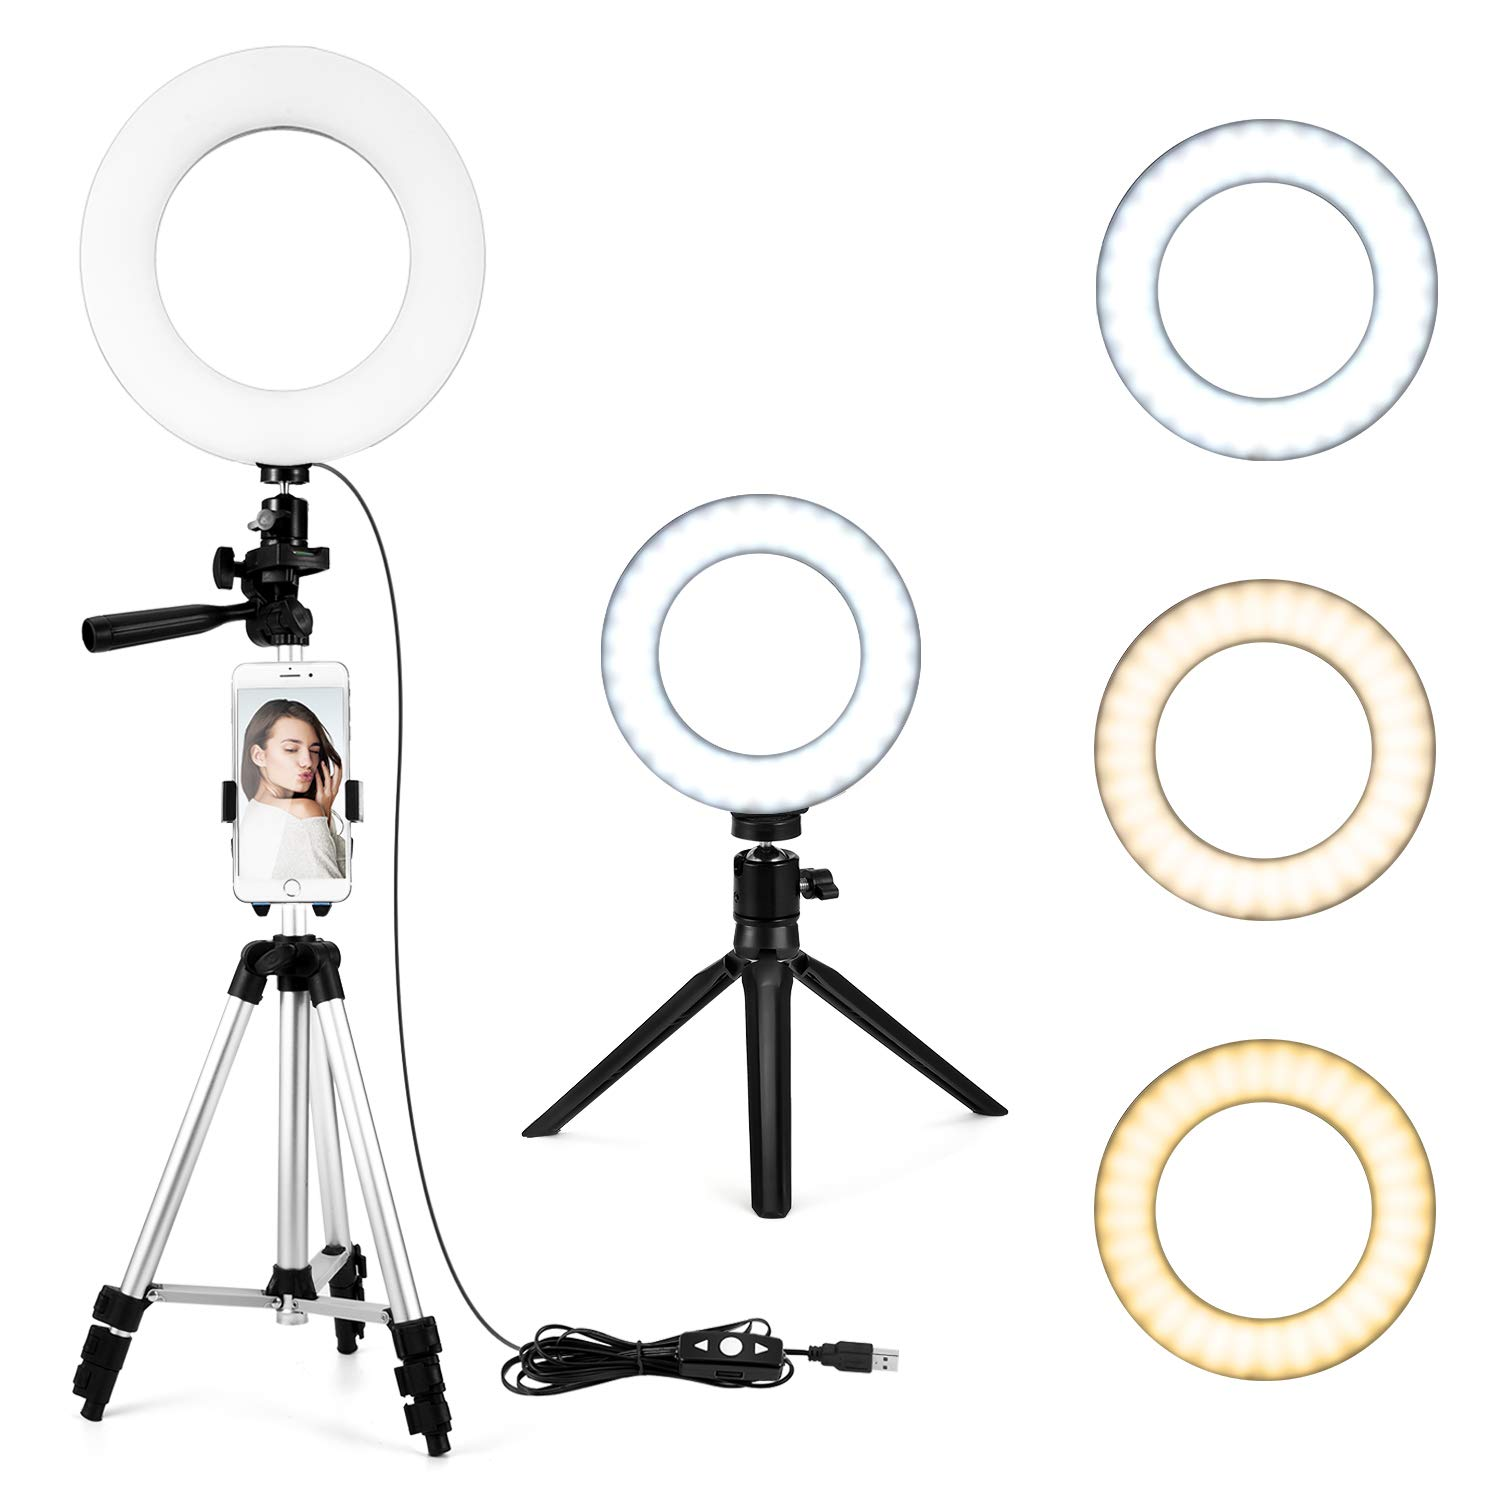 6'' Selfie Ring Light with Tripod Stand & Cell Phone Holder for Live Stream/Makeup, KMASHI Mini Led Camera Ringlight for YouTube Video/Photography Compatible with iPhone Xs Max XR Samsung